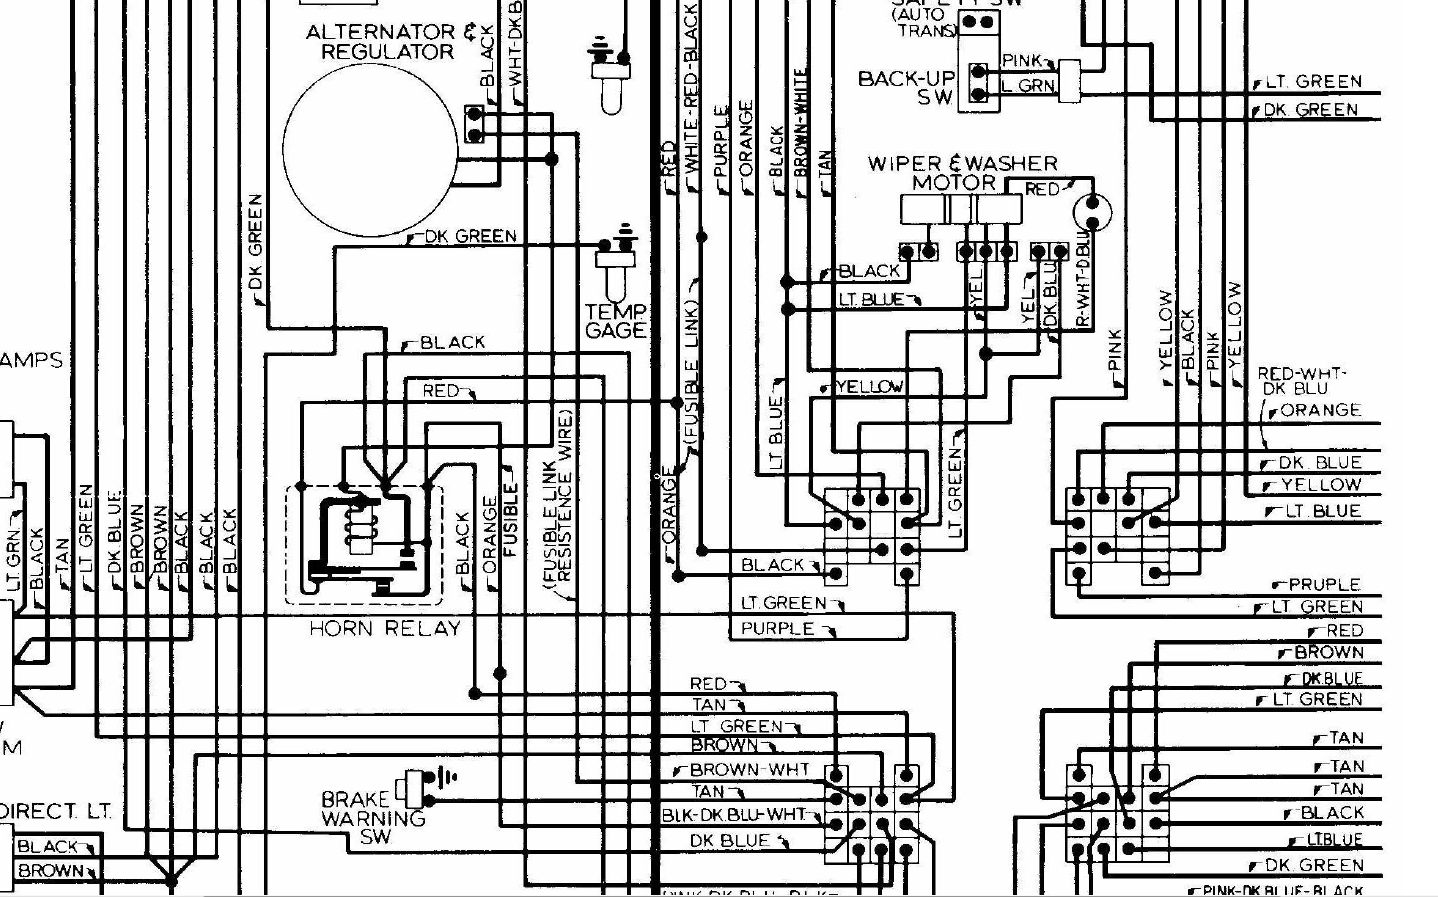 🏆 [DIAGRAM in Pictures Database] 64 Corvette Horn Relay Wiring Diagram  Just Download or Read Wiring Diagram -  NATHALIE.CHINTANAVITCH.KRIPKE-MODELS.ONYXUM.COMComplete Diagram Picture Database - Onyxum.com